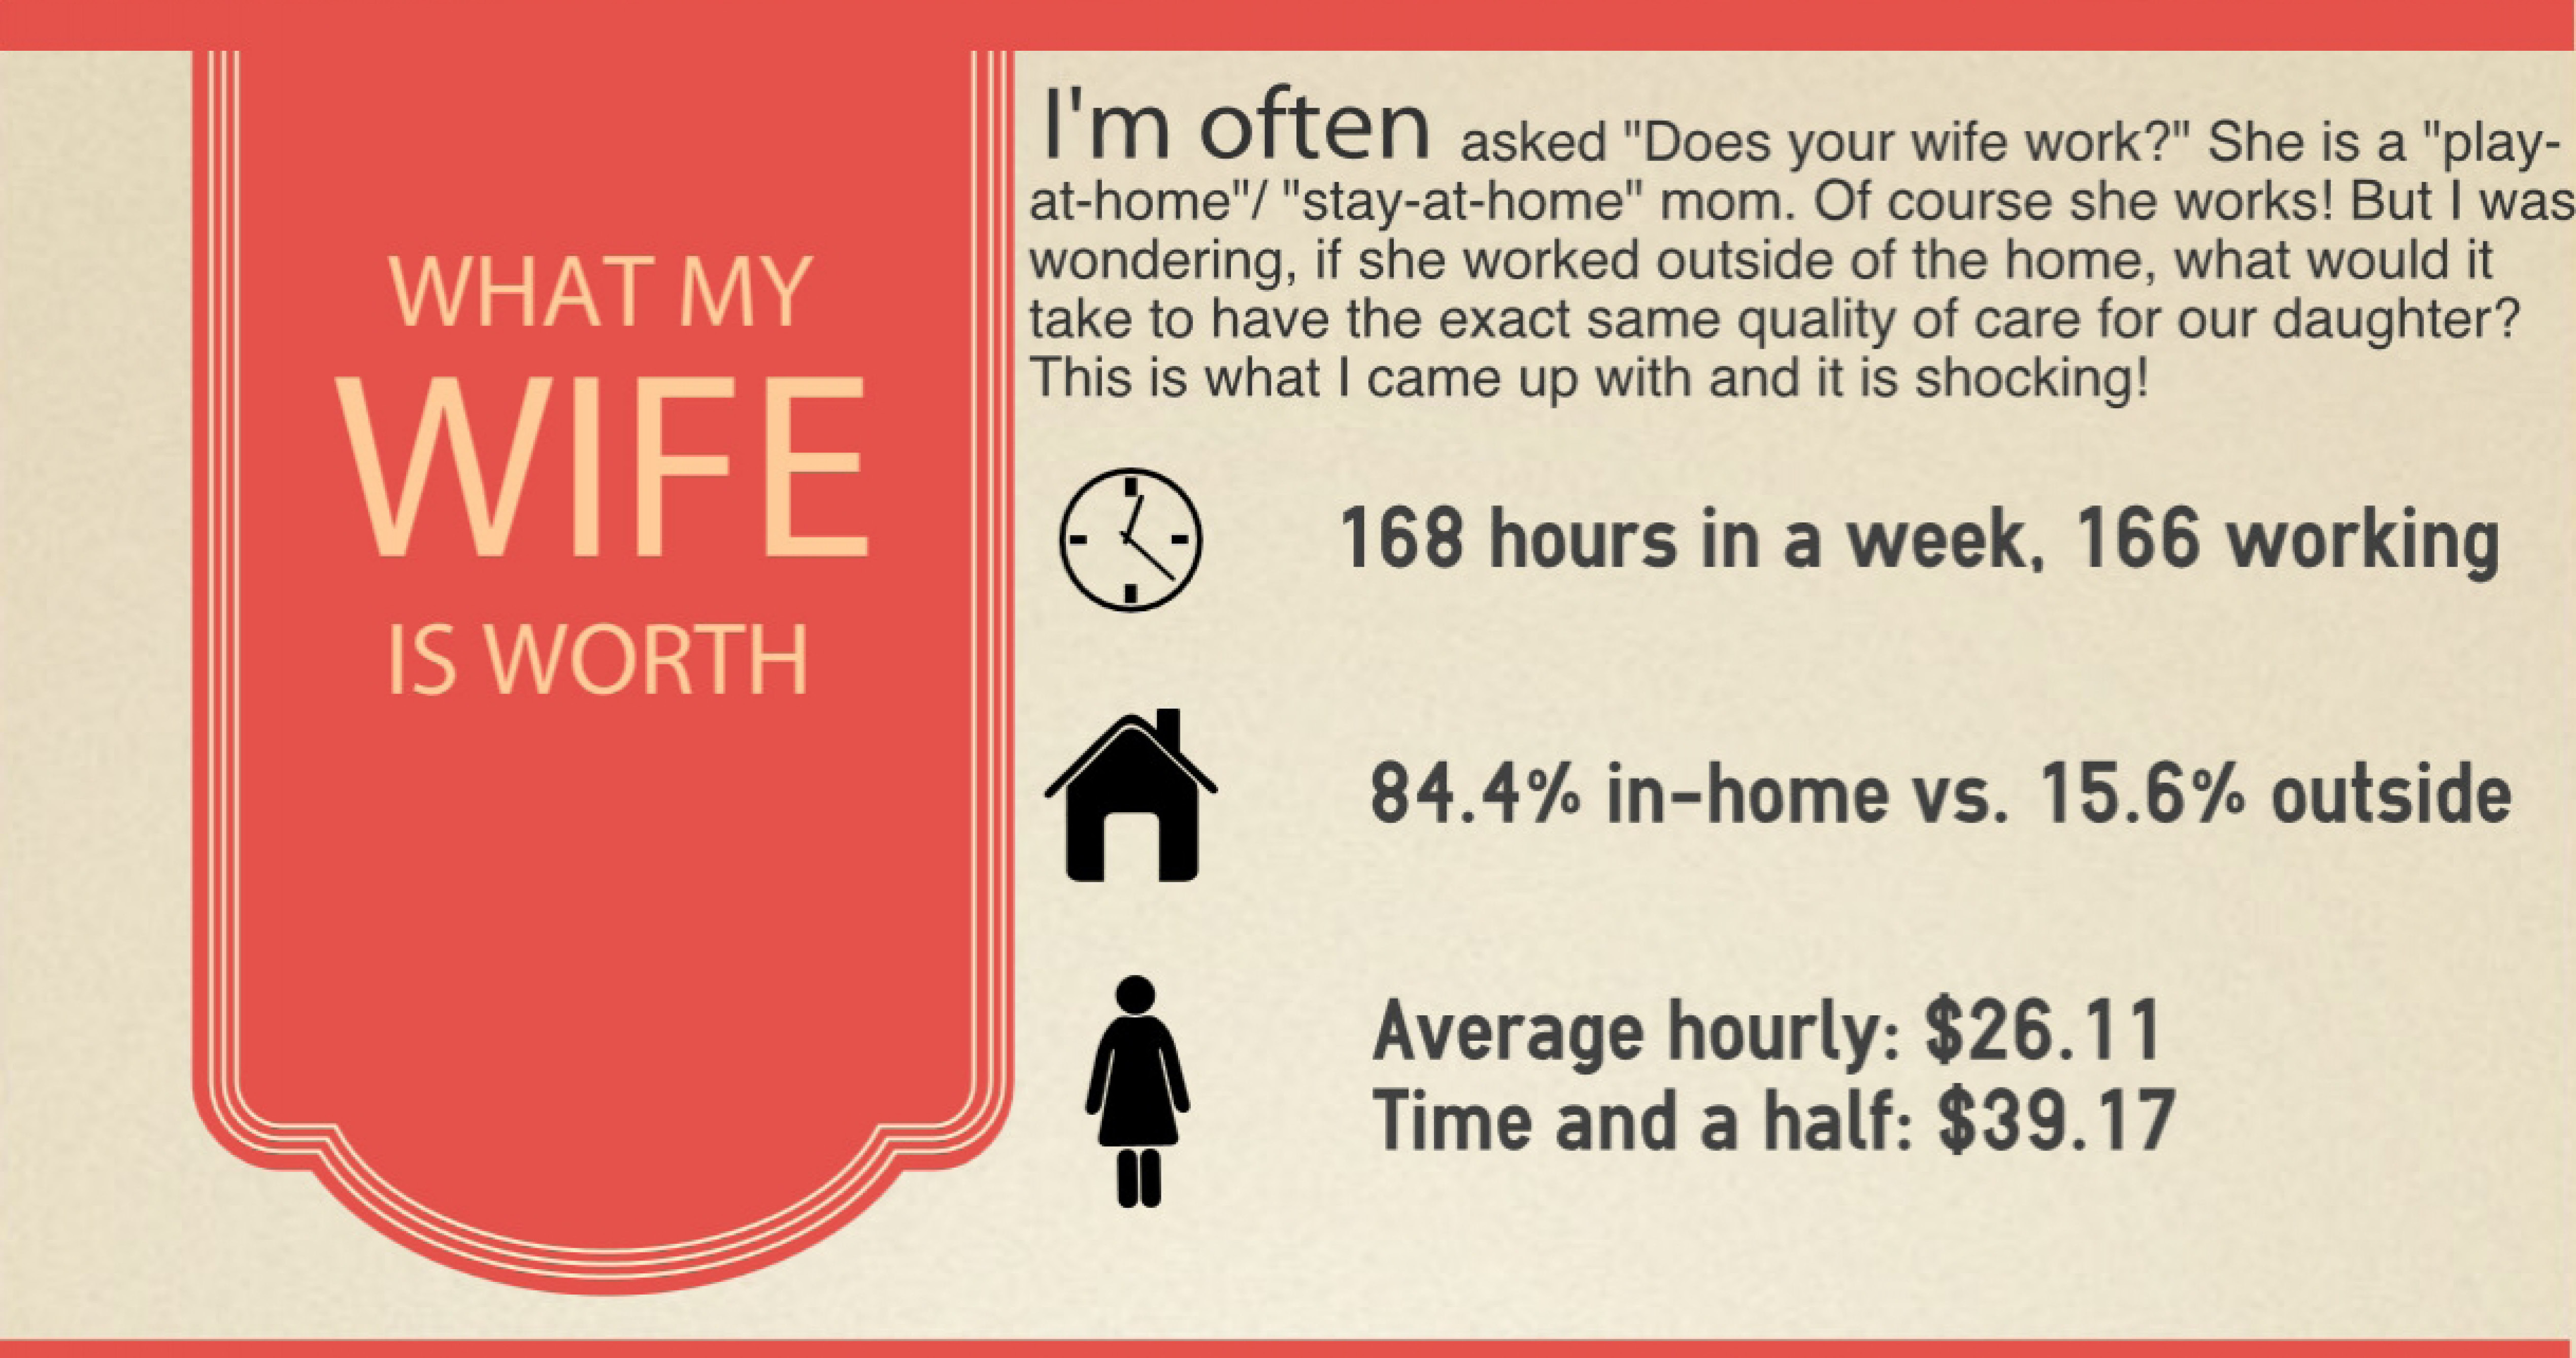 What my wife is worth | An infographic about stay-at-home moms - How ...